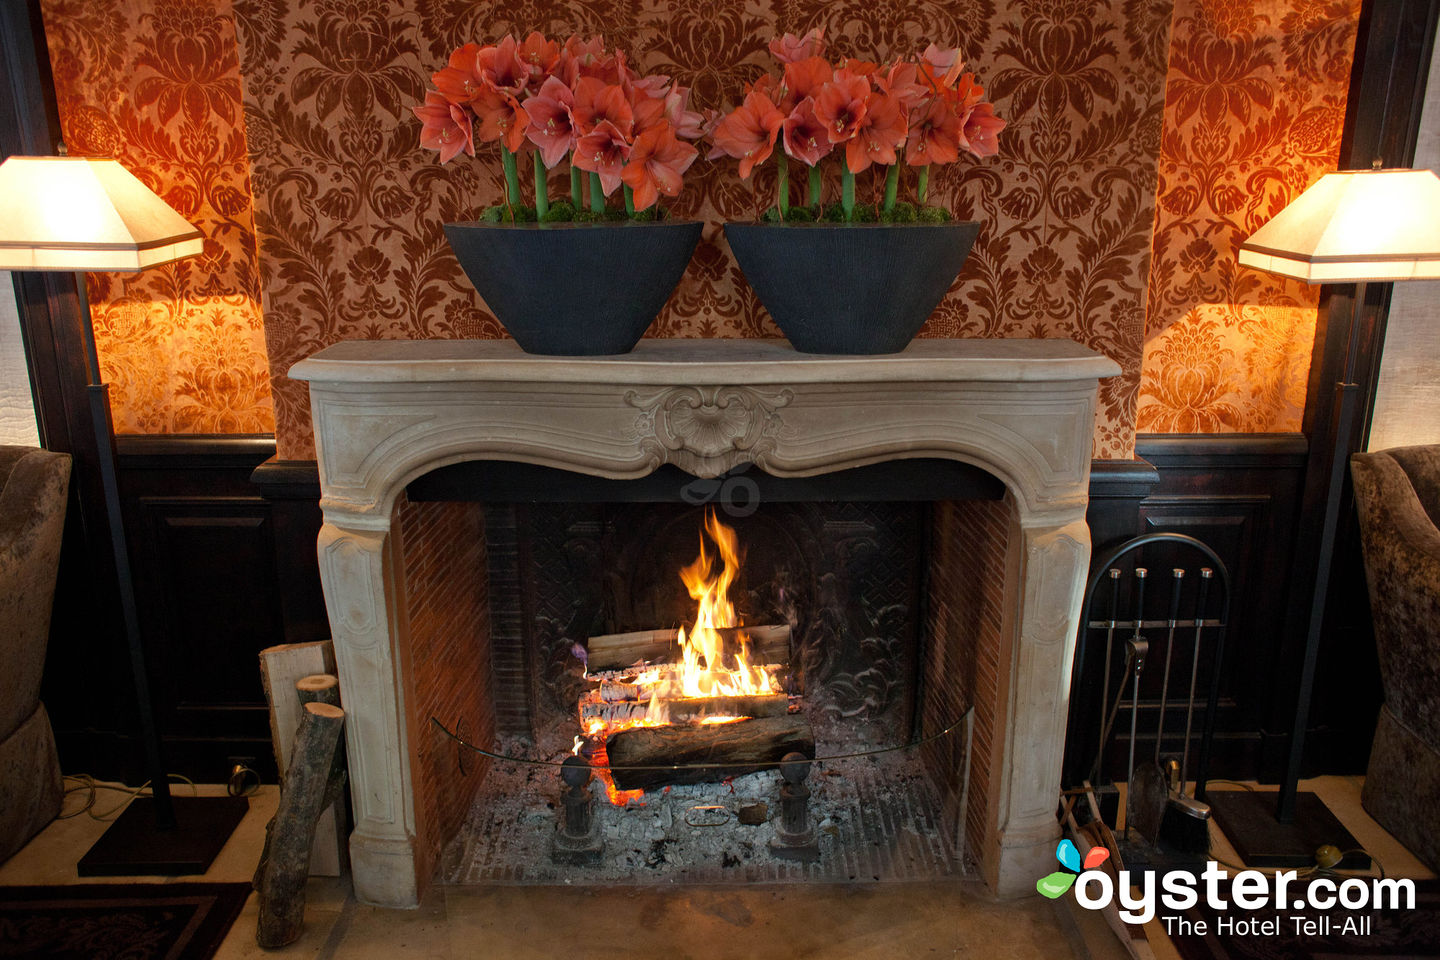 Fireplace at Le Pavillon de la Reine/Oyster